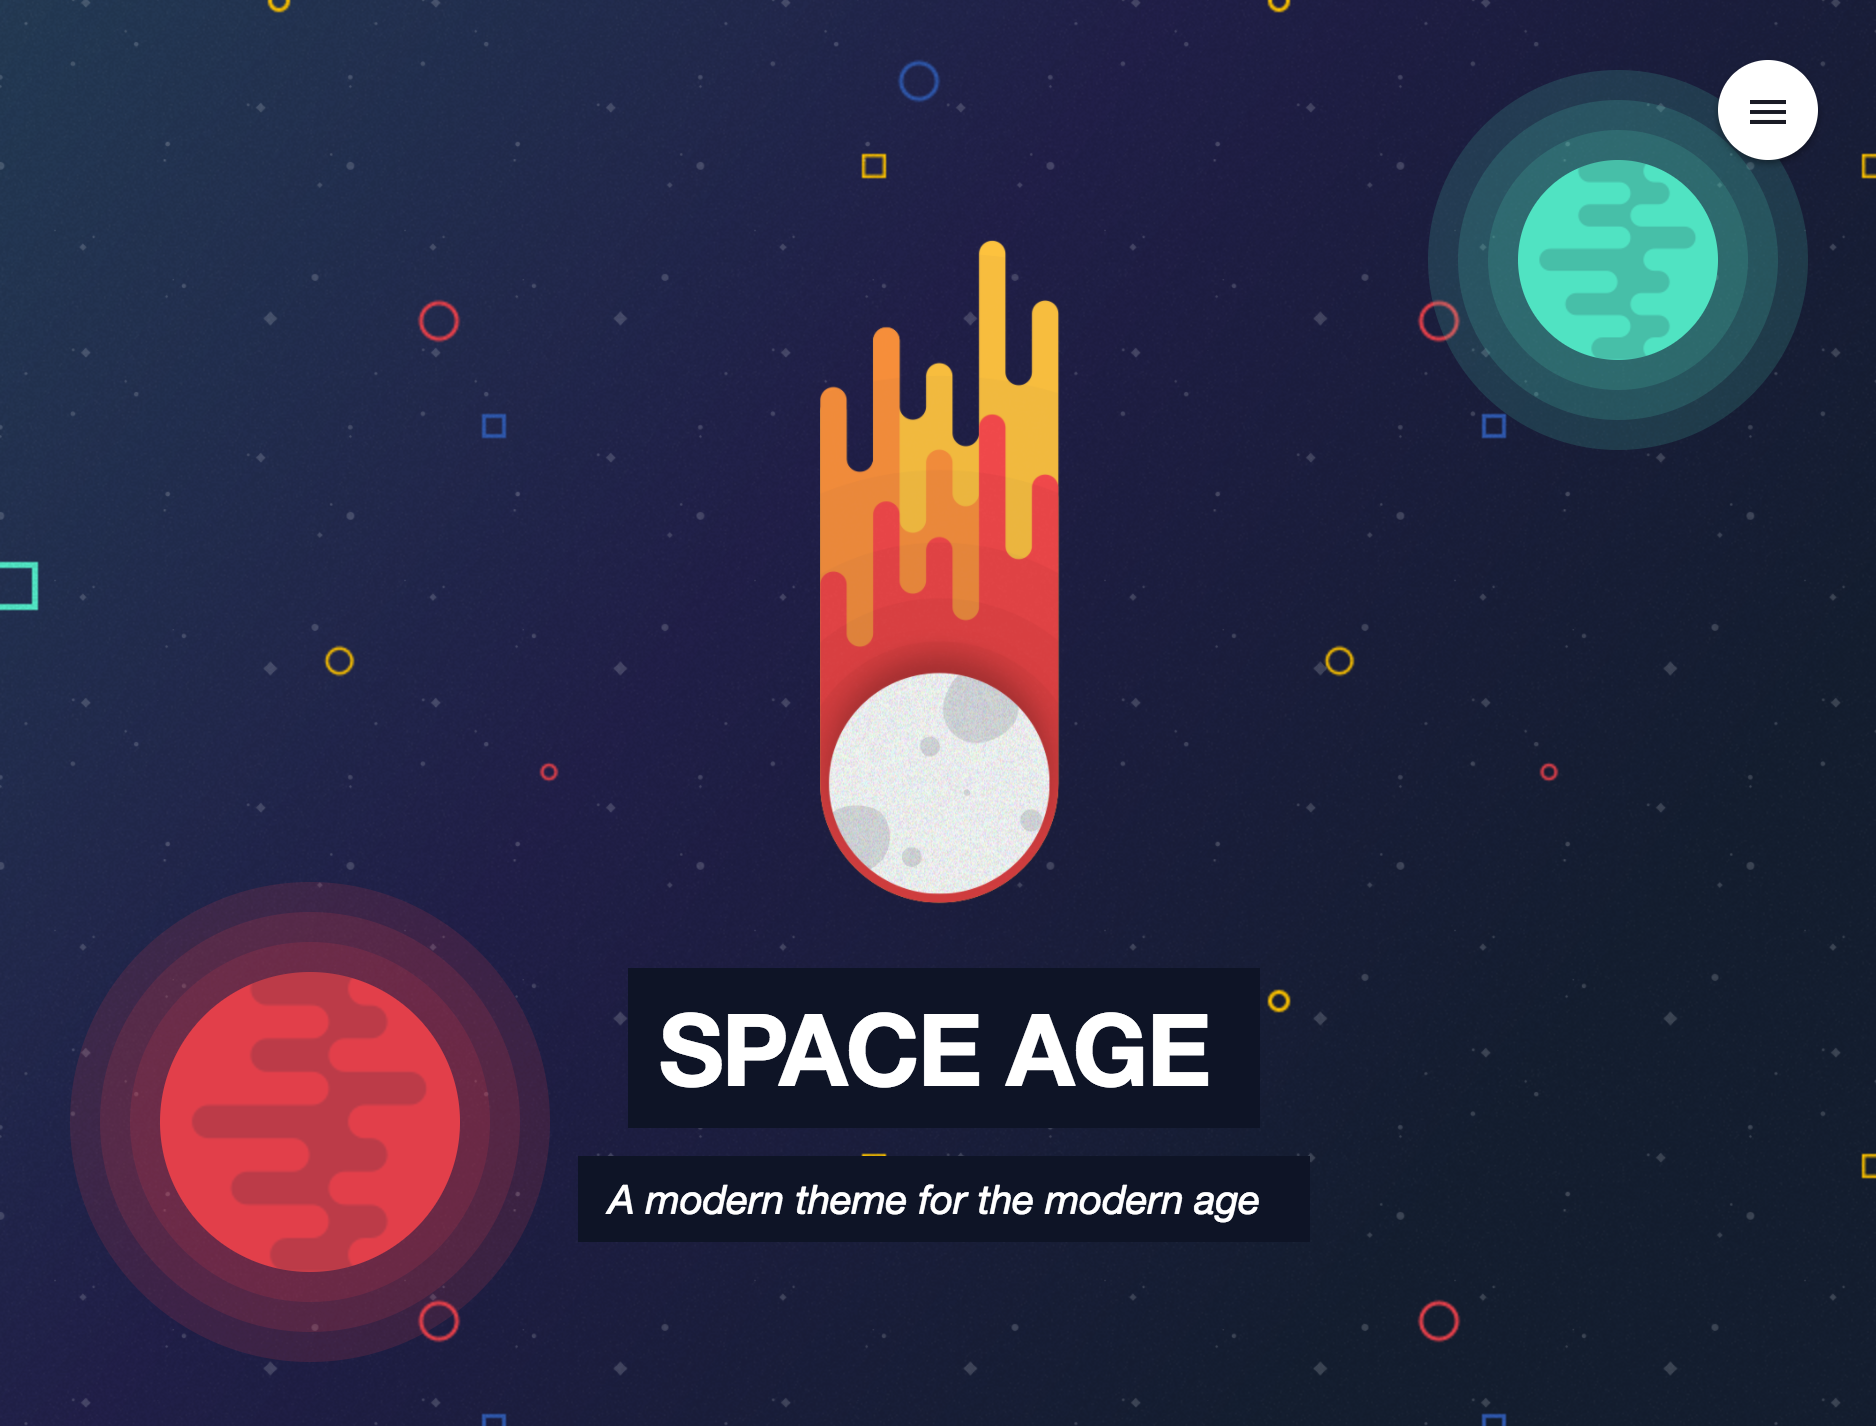 Space Age RapidWeaver Theme